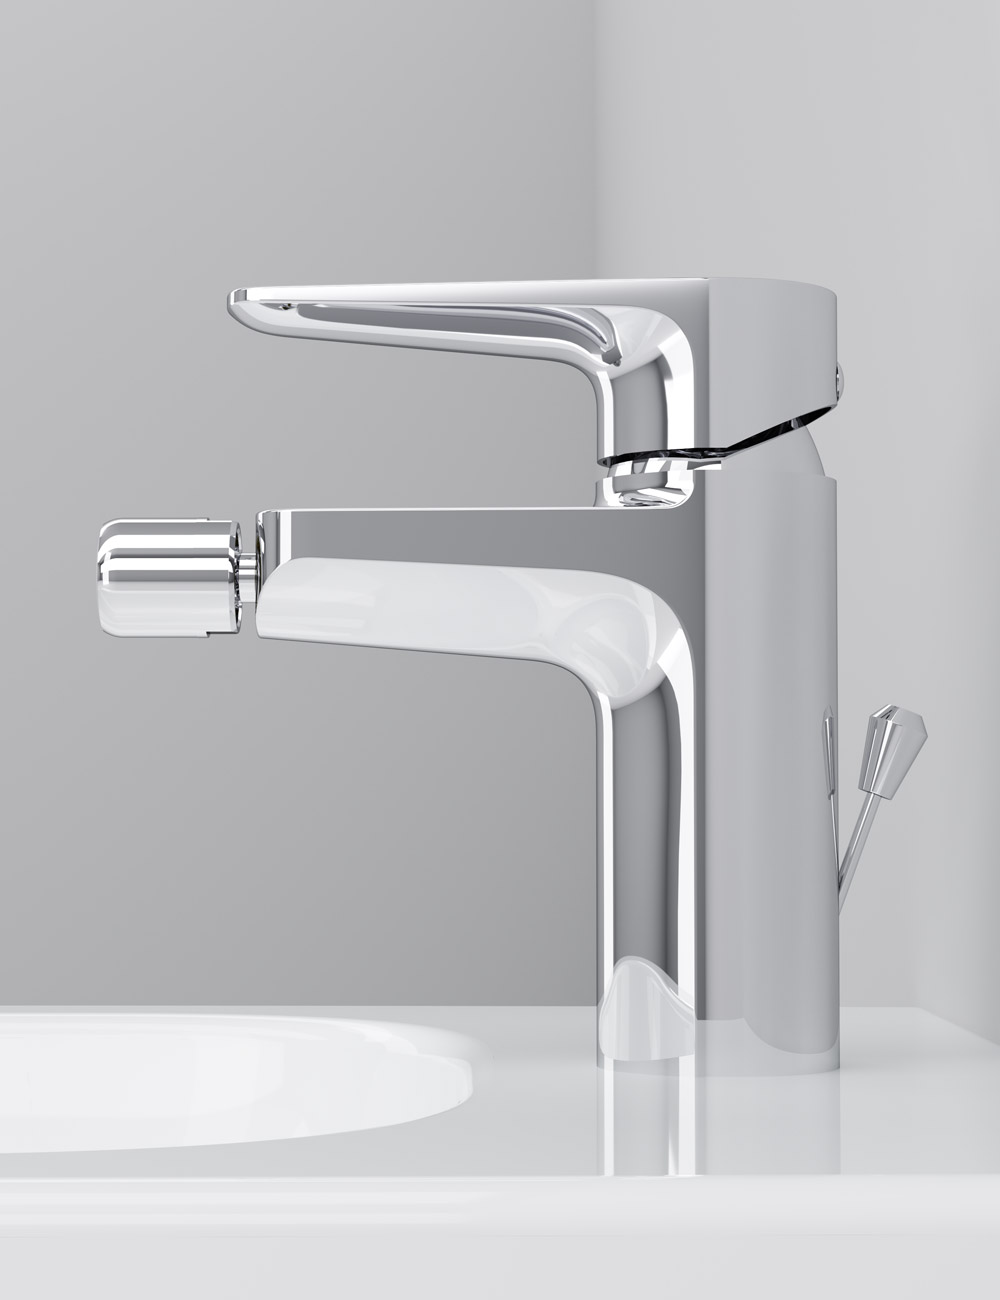 F5083100 Single-lever bidet mixer with waste set